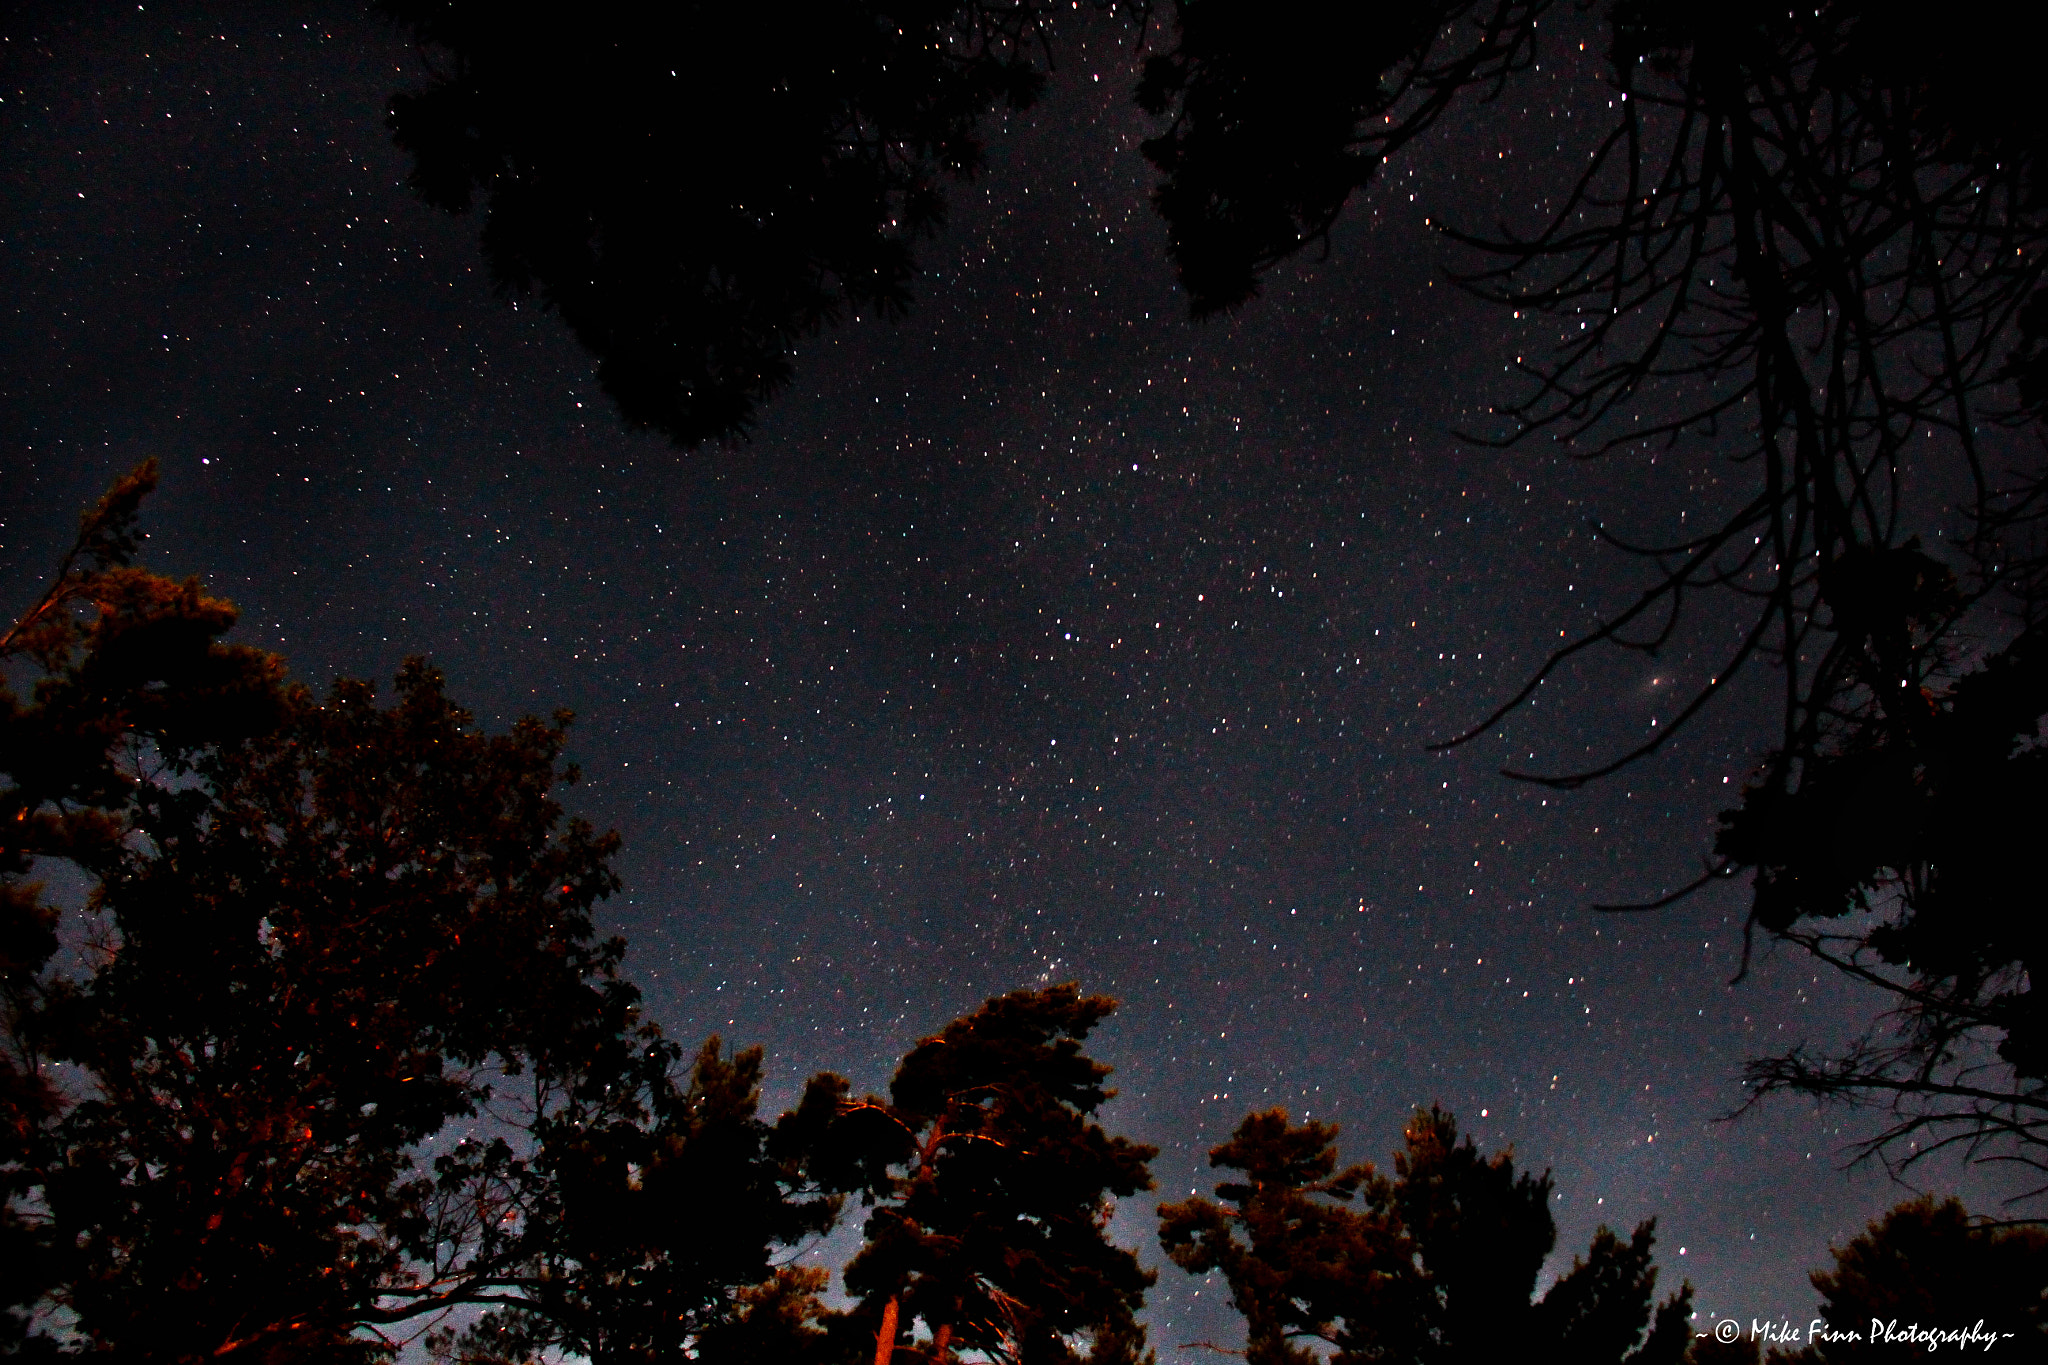 Photograph Andromeda in the trees by Mike Finn  Photography on 500px